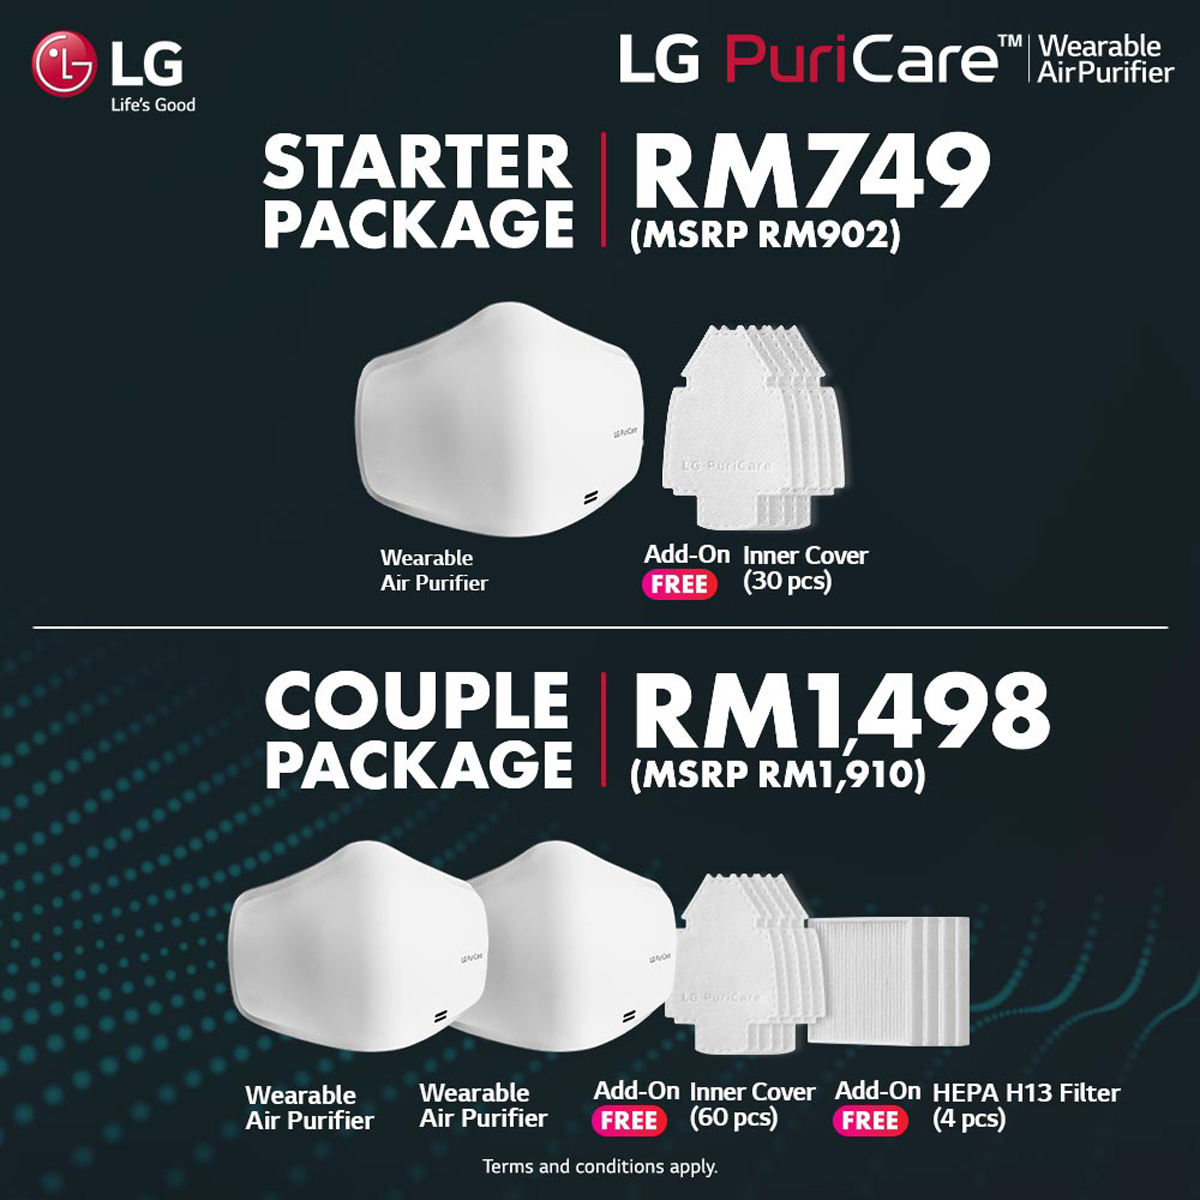 LG PuriCare Wearable Air Purifier Mask Malaysia Pre-order